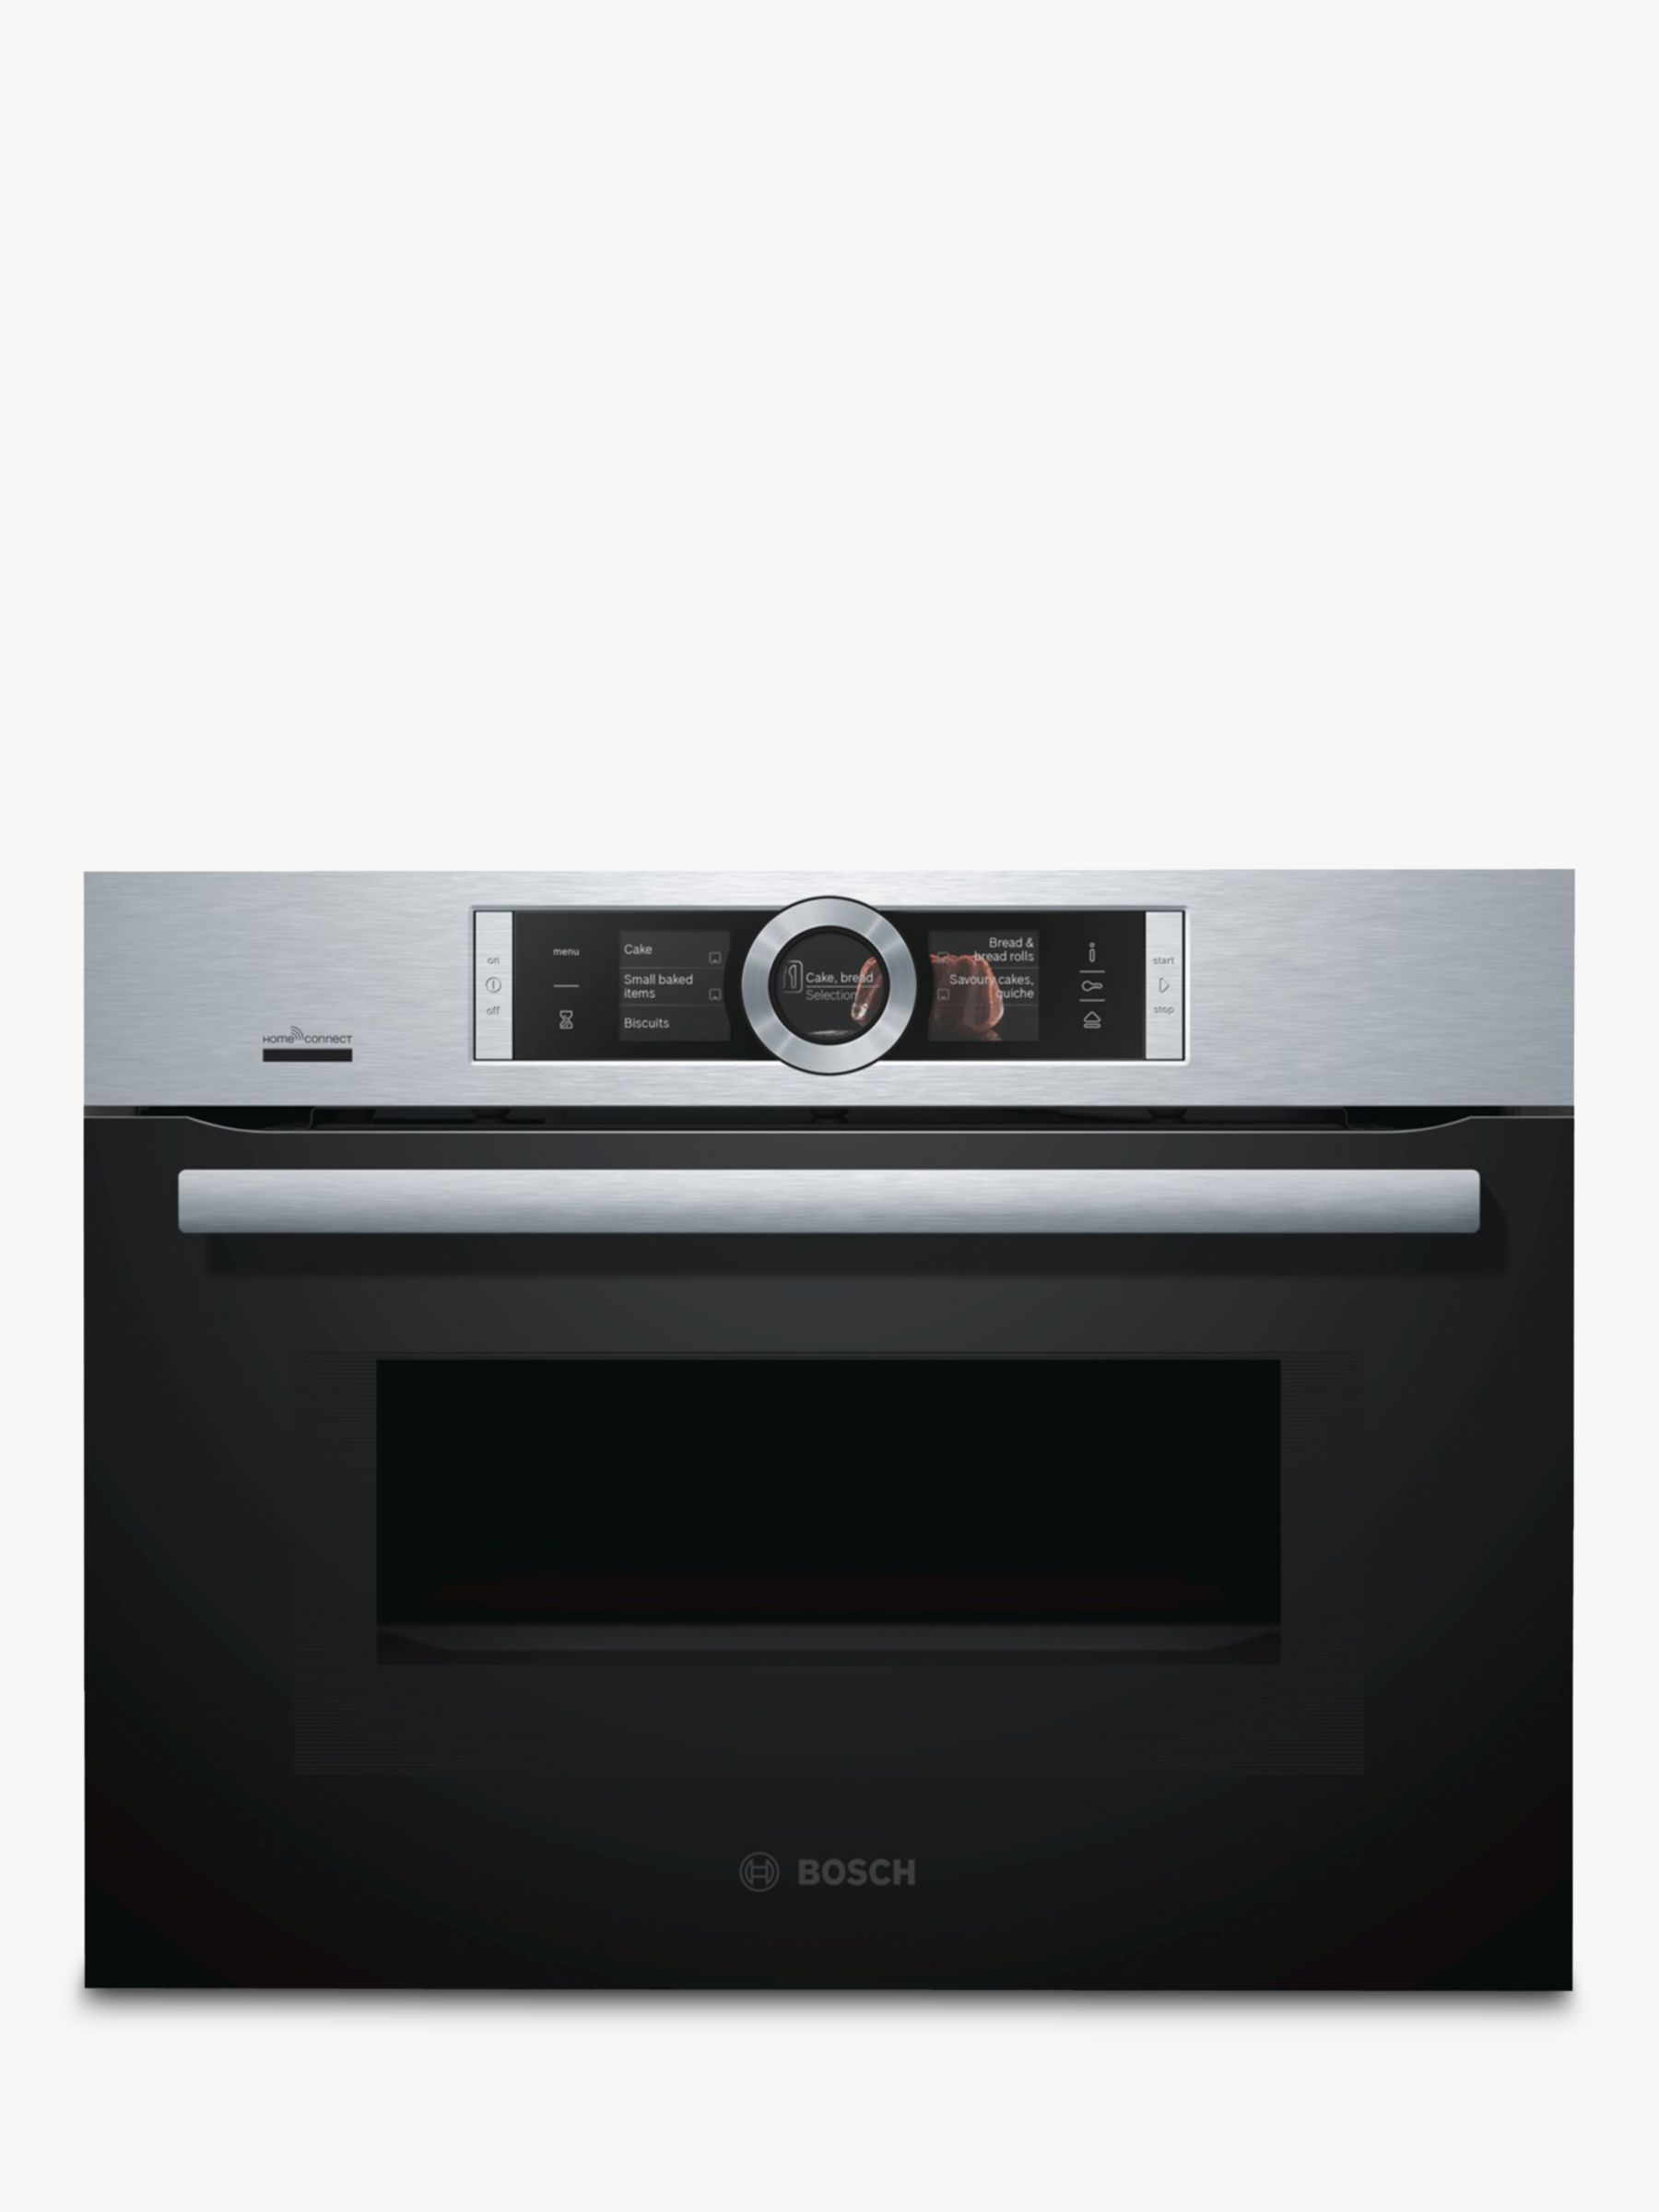 hight resolution of buy bosch cng6764s6b built in multifunction microwave oven brushed steel online at johnlewis